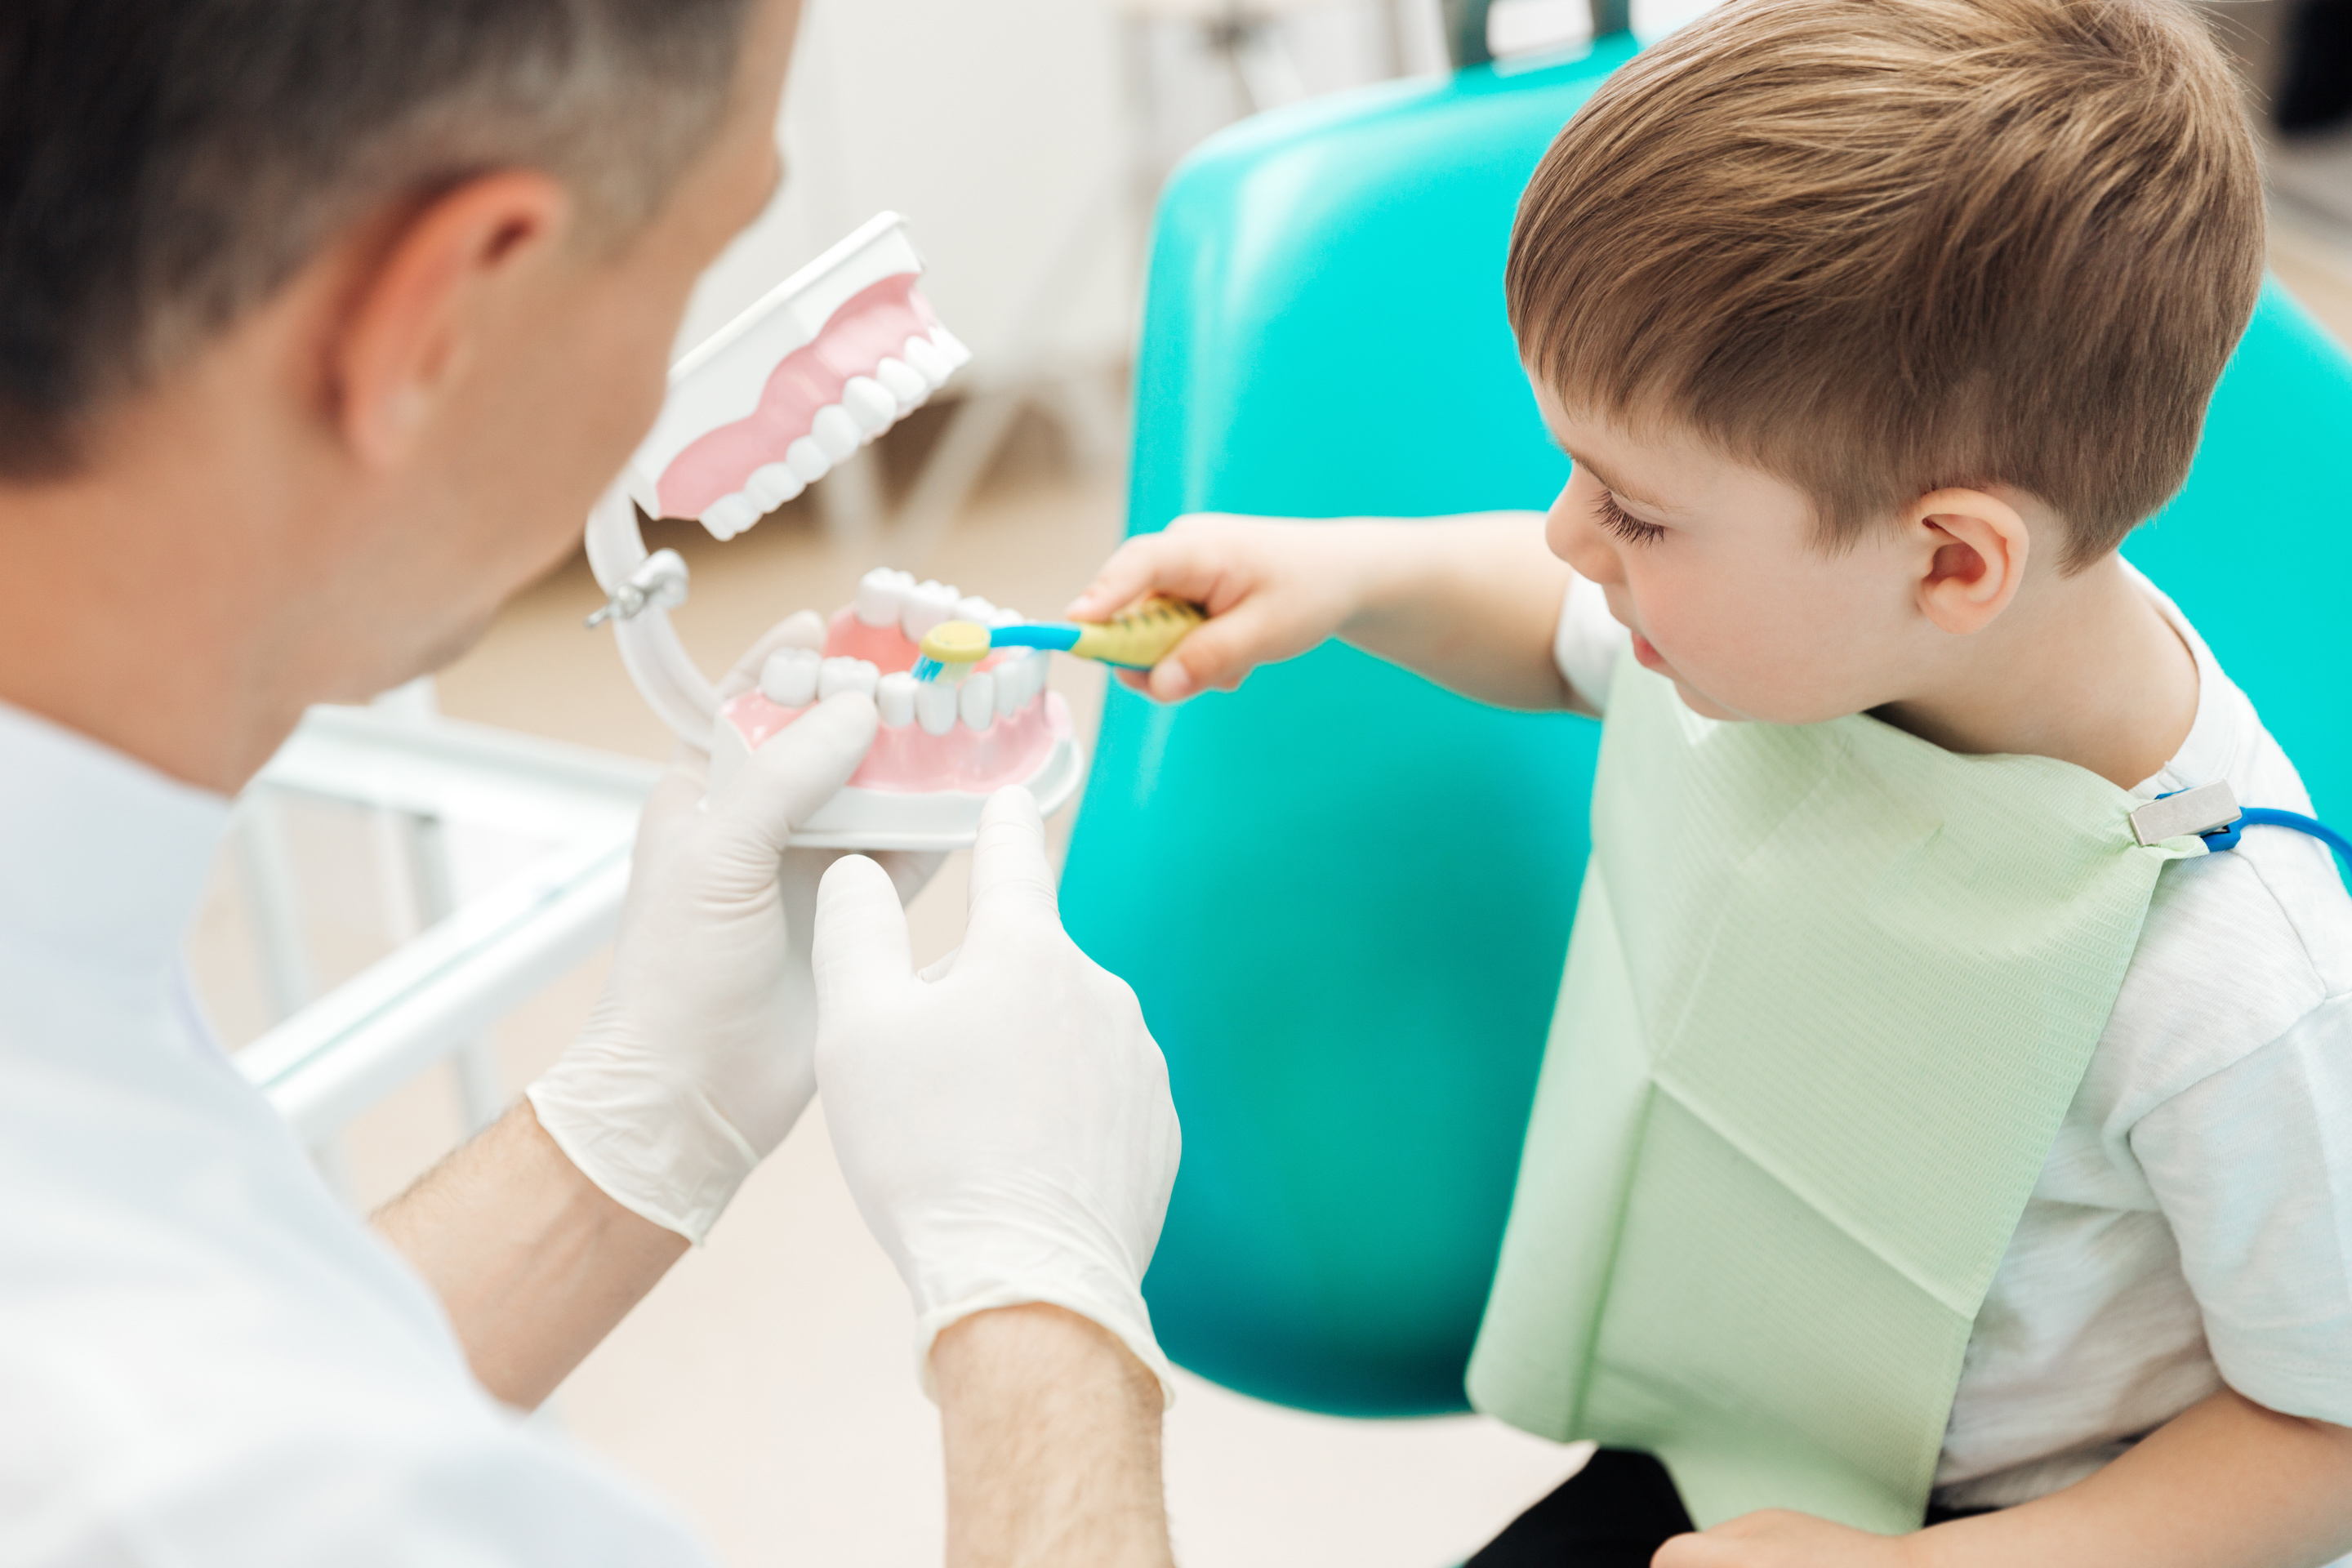 Summer Break: The Best Time for Pediatric Dental Appointments